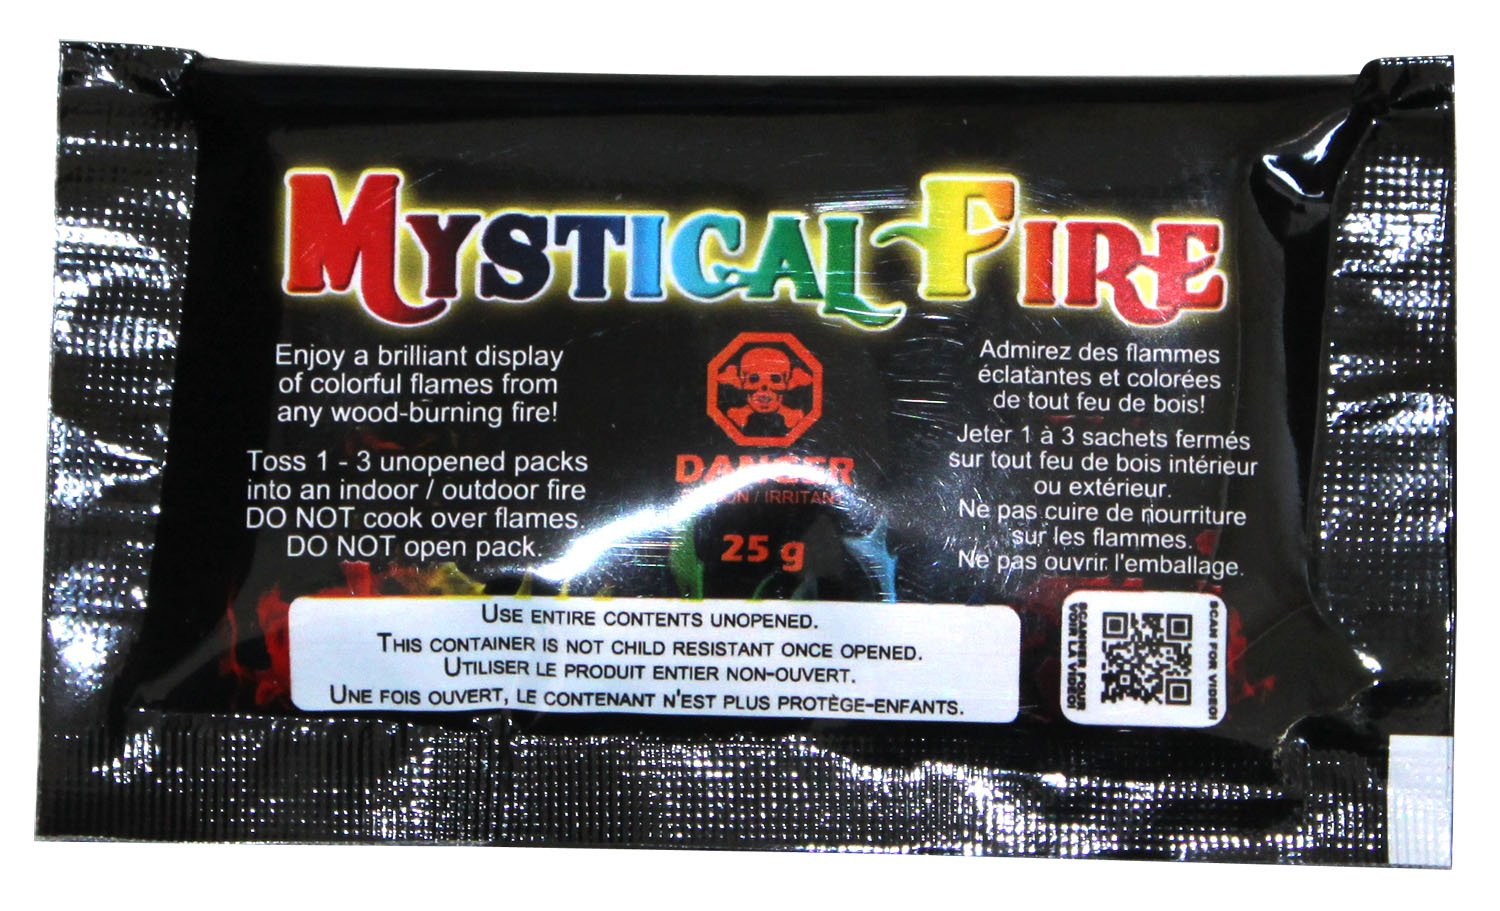 Mystical Fire Flame Colorant Vibrant Long-Lasting Pulsating Flame Color Changer for Indoor or Outdoor Use 0.882 oz Packets 3 Pack FBA_Mystical Fire CMP1519